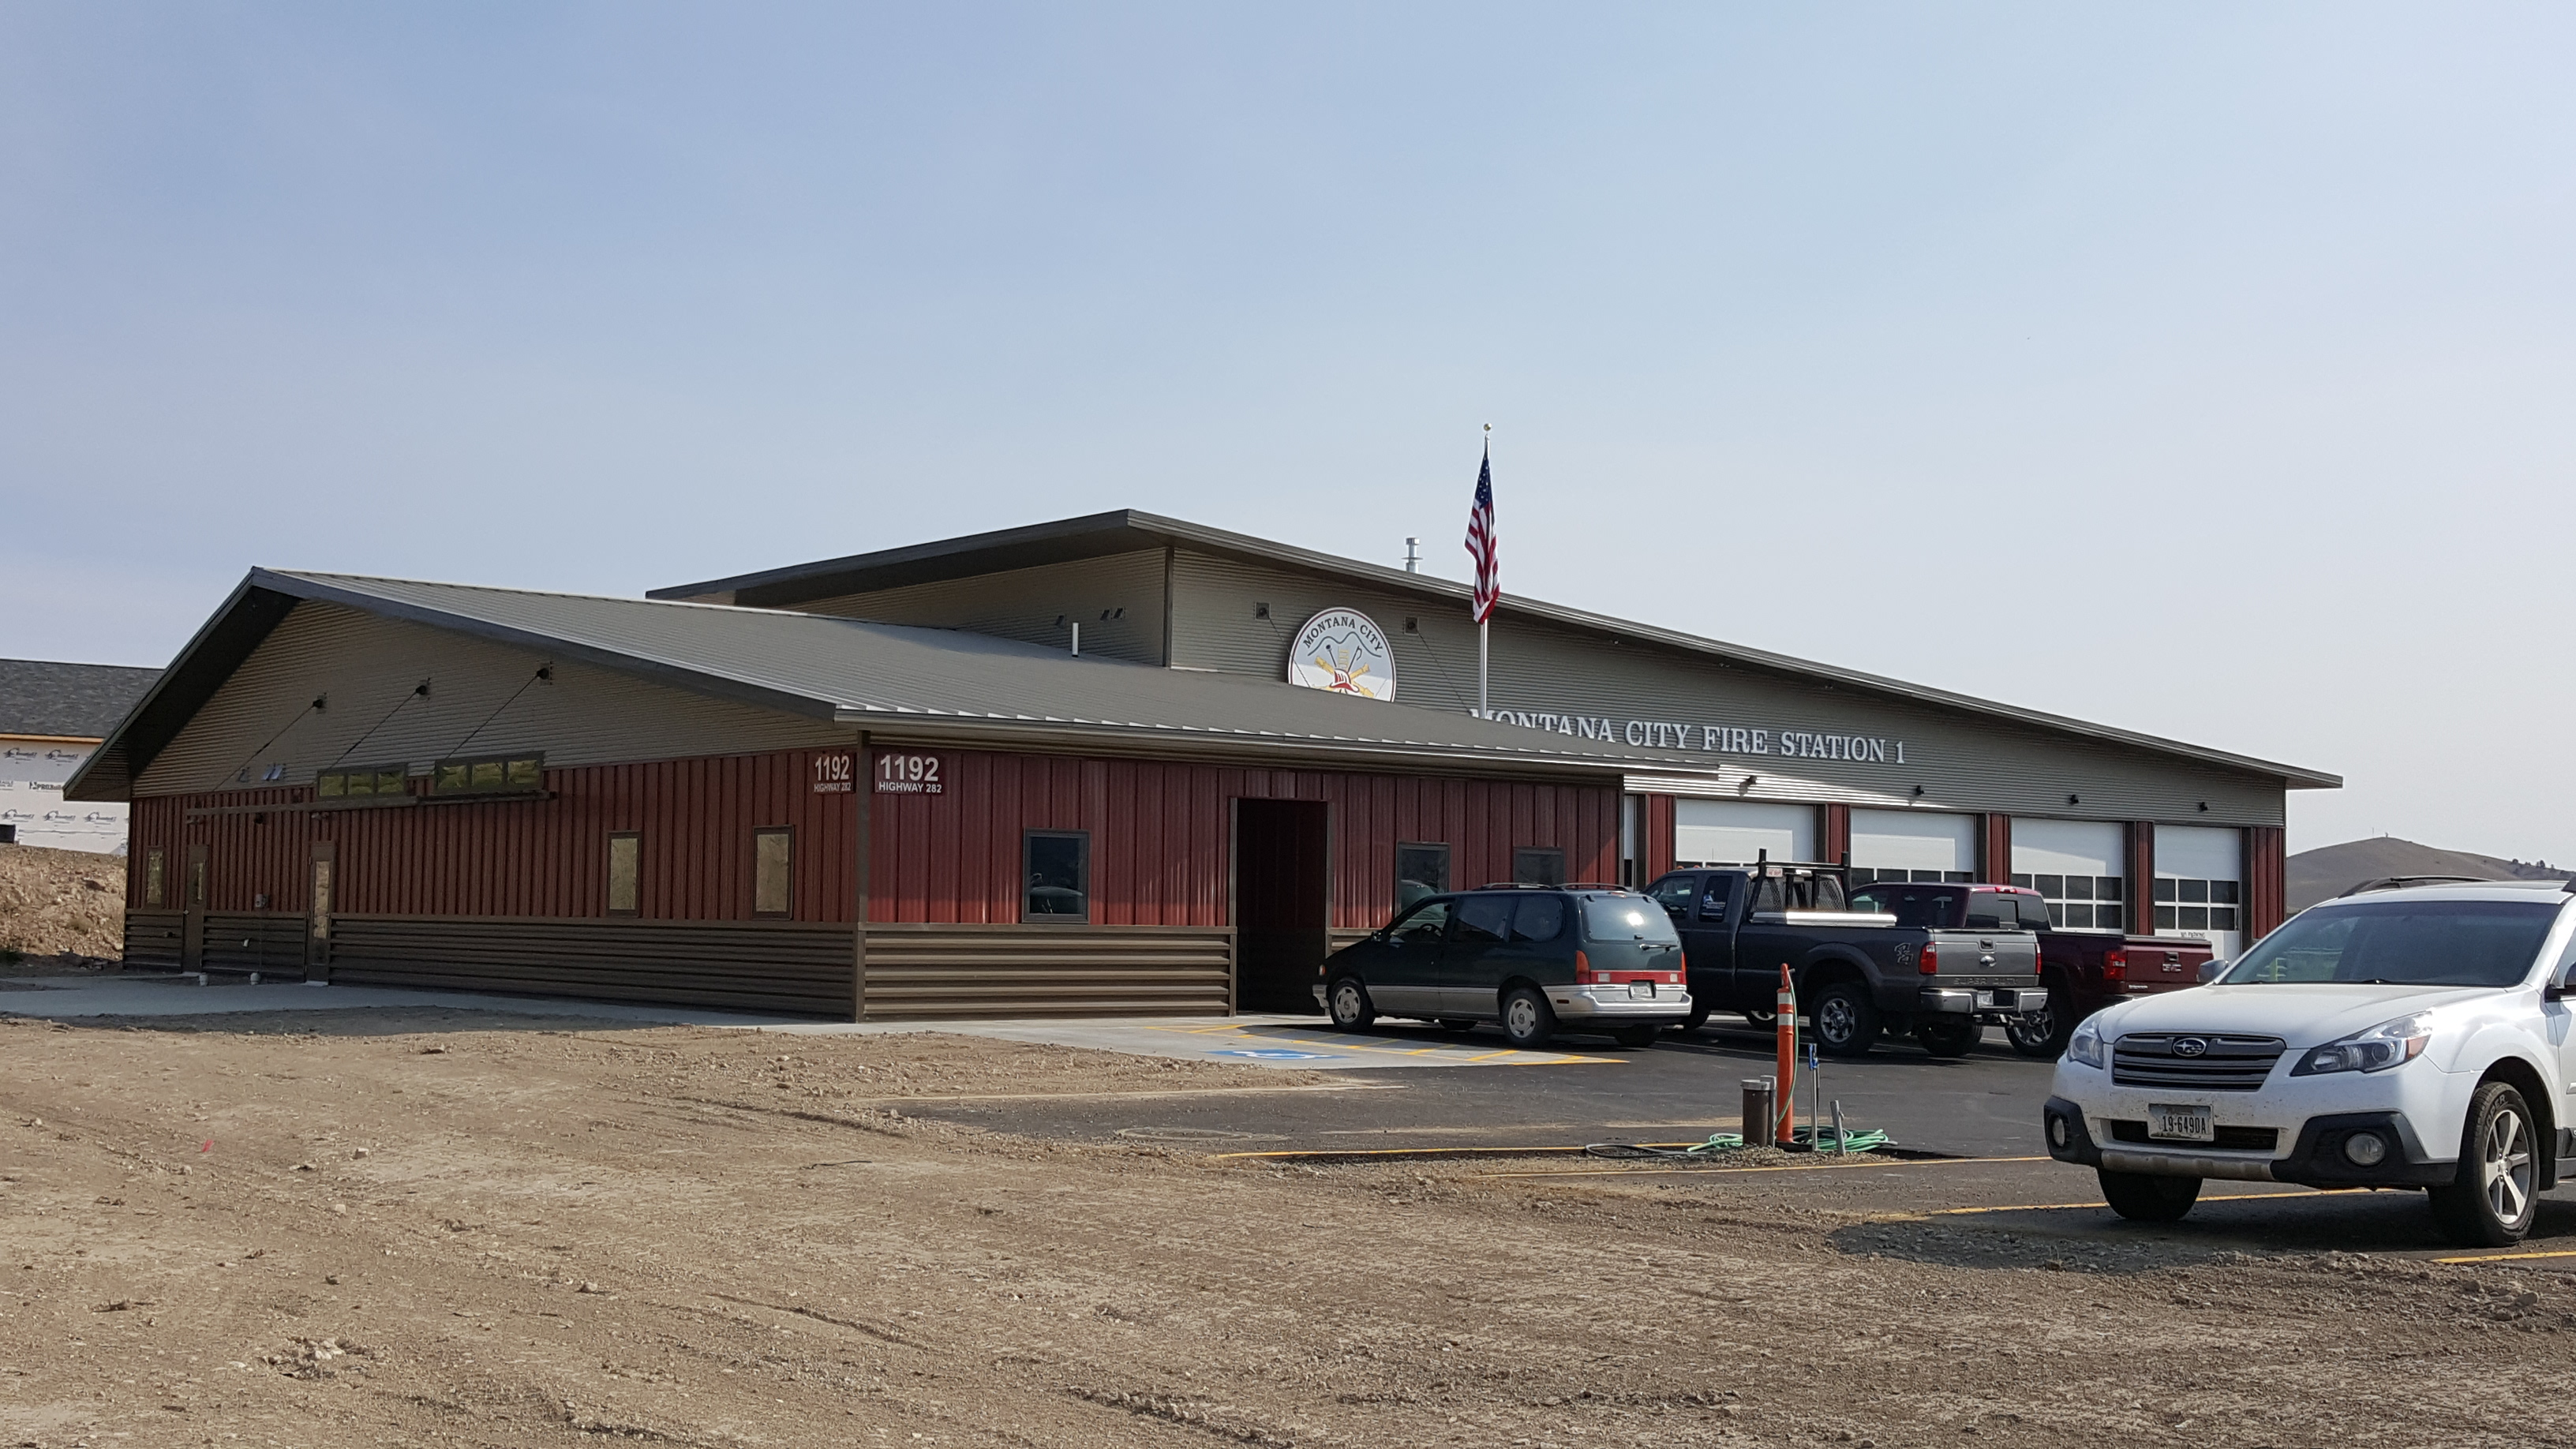 Montana City Fire Station #1